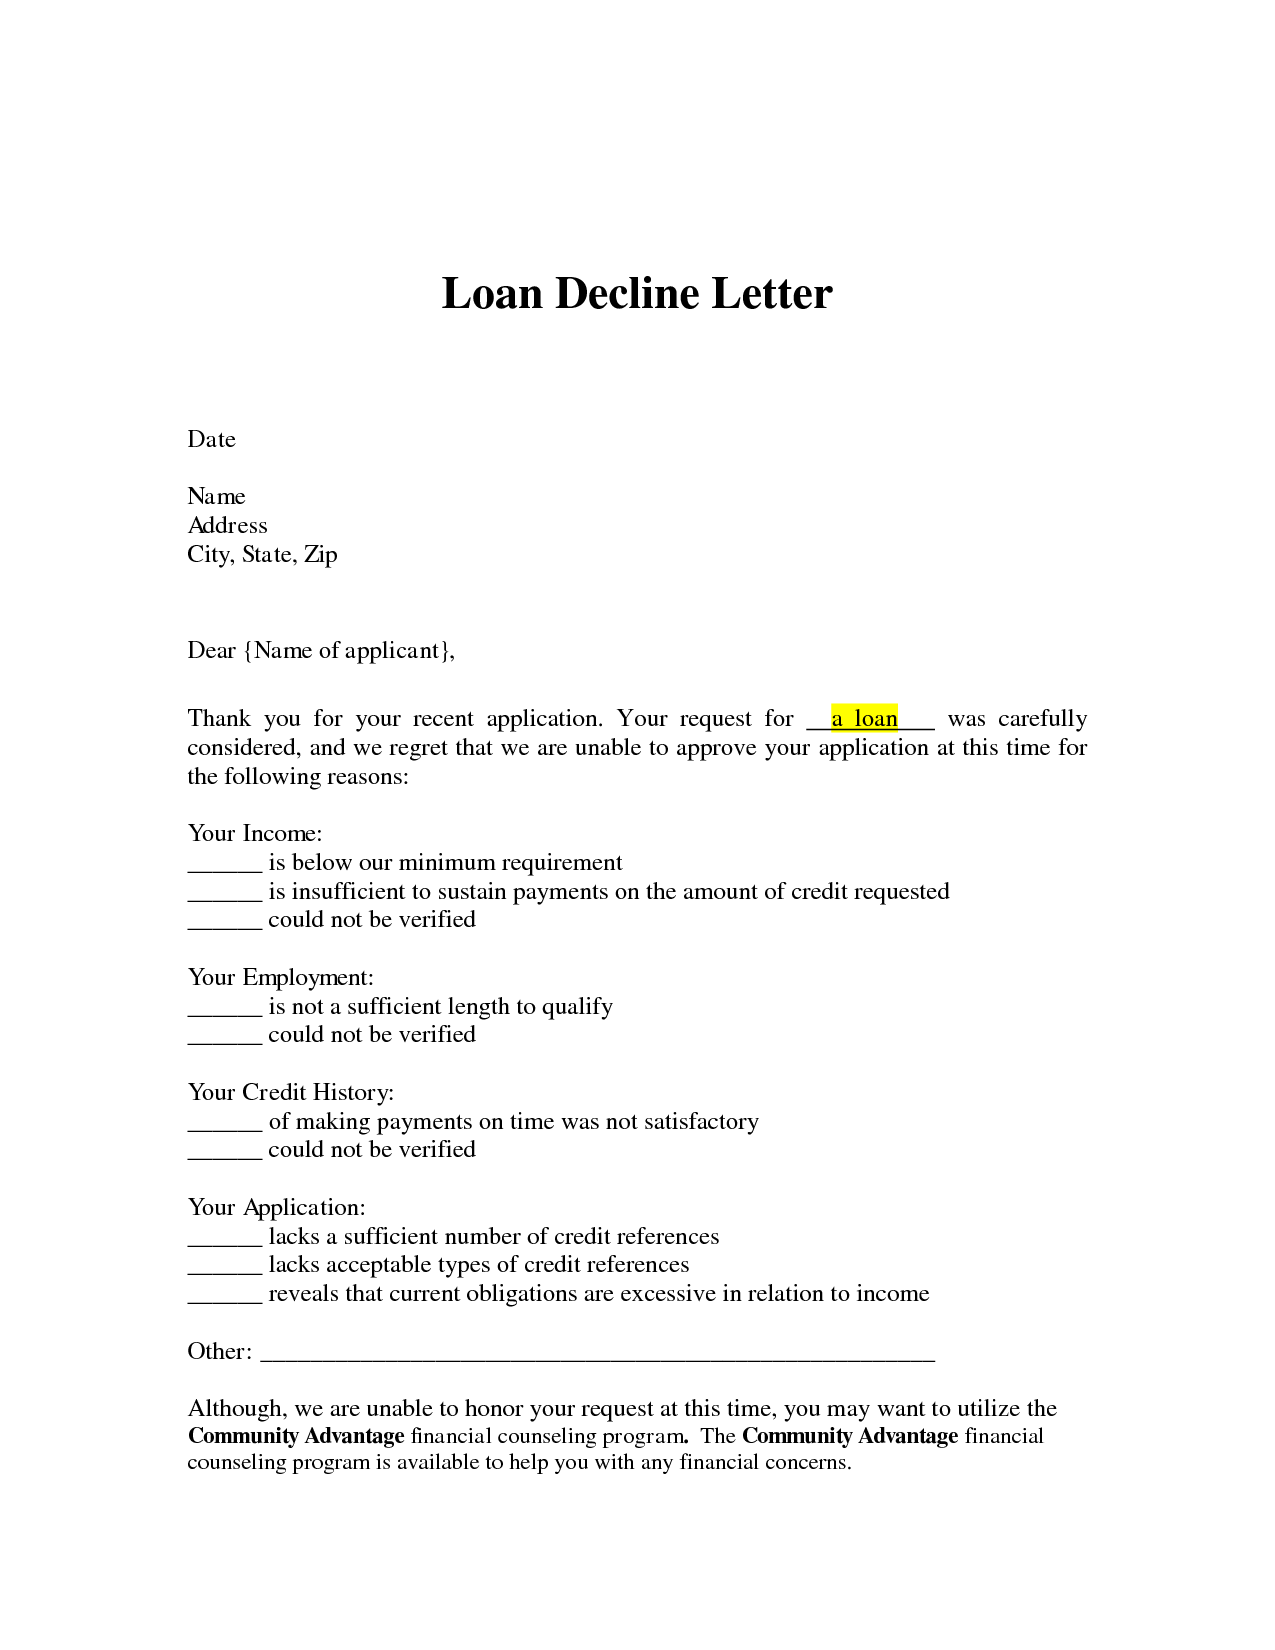 loan decline letter loan denial letter arrives you can use that information to see